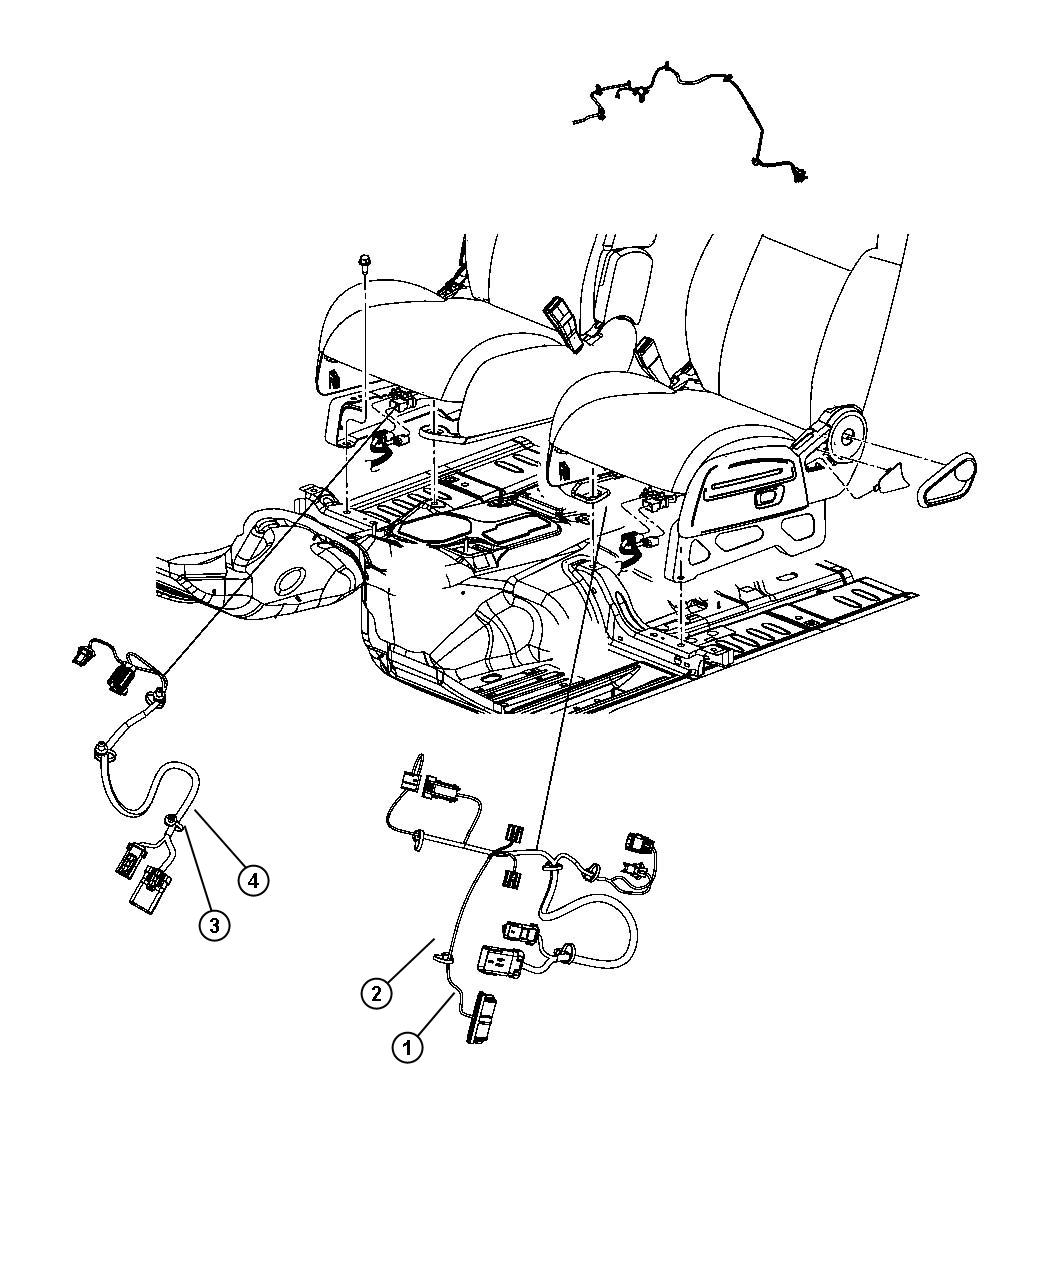 Jeep Liberty Wiring. Power seat. Export. 2 way, 2 way